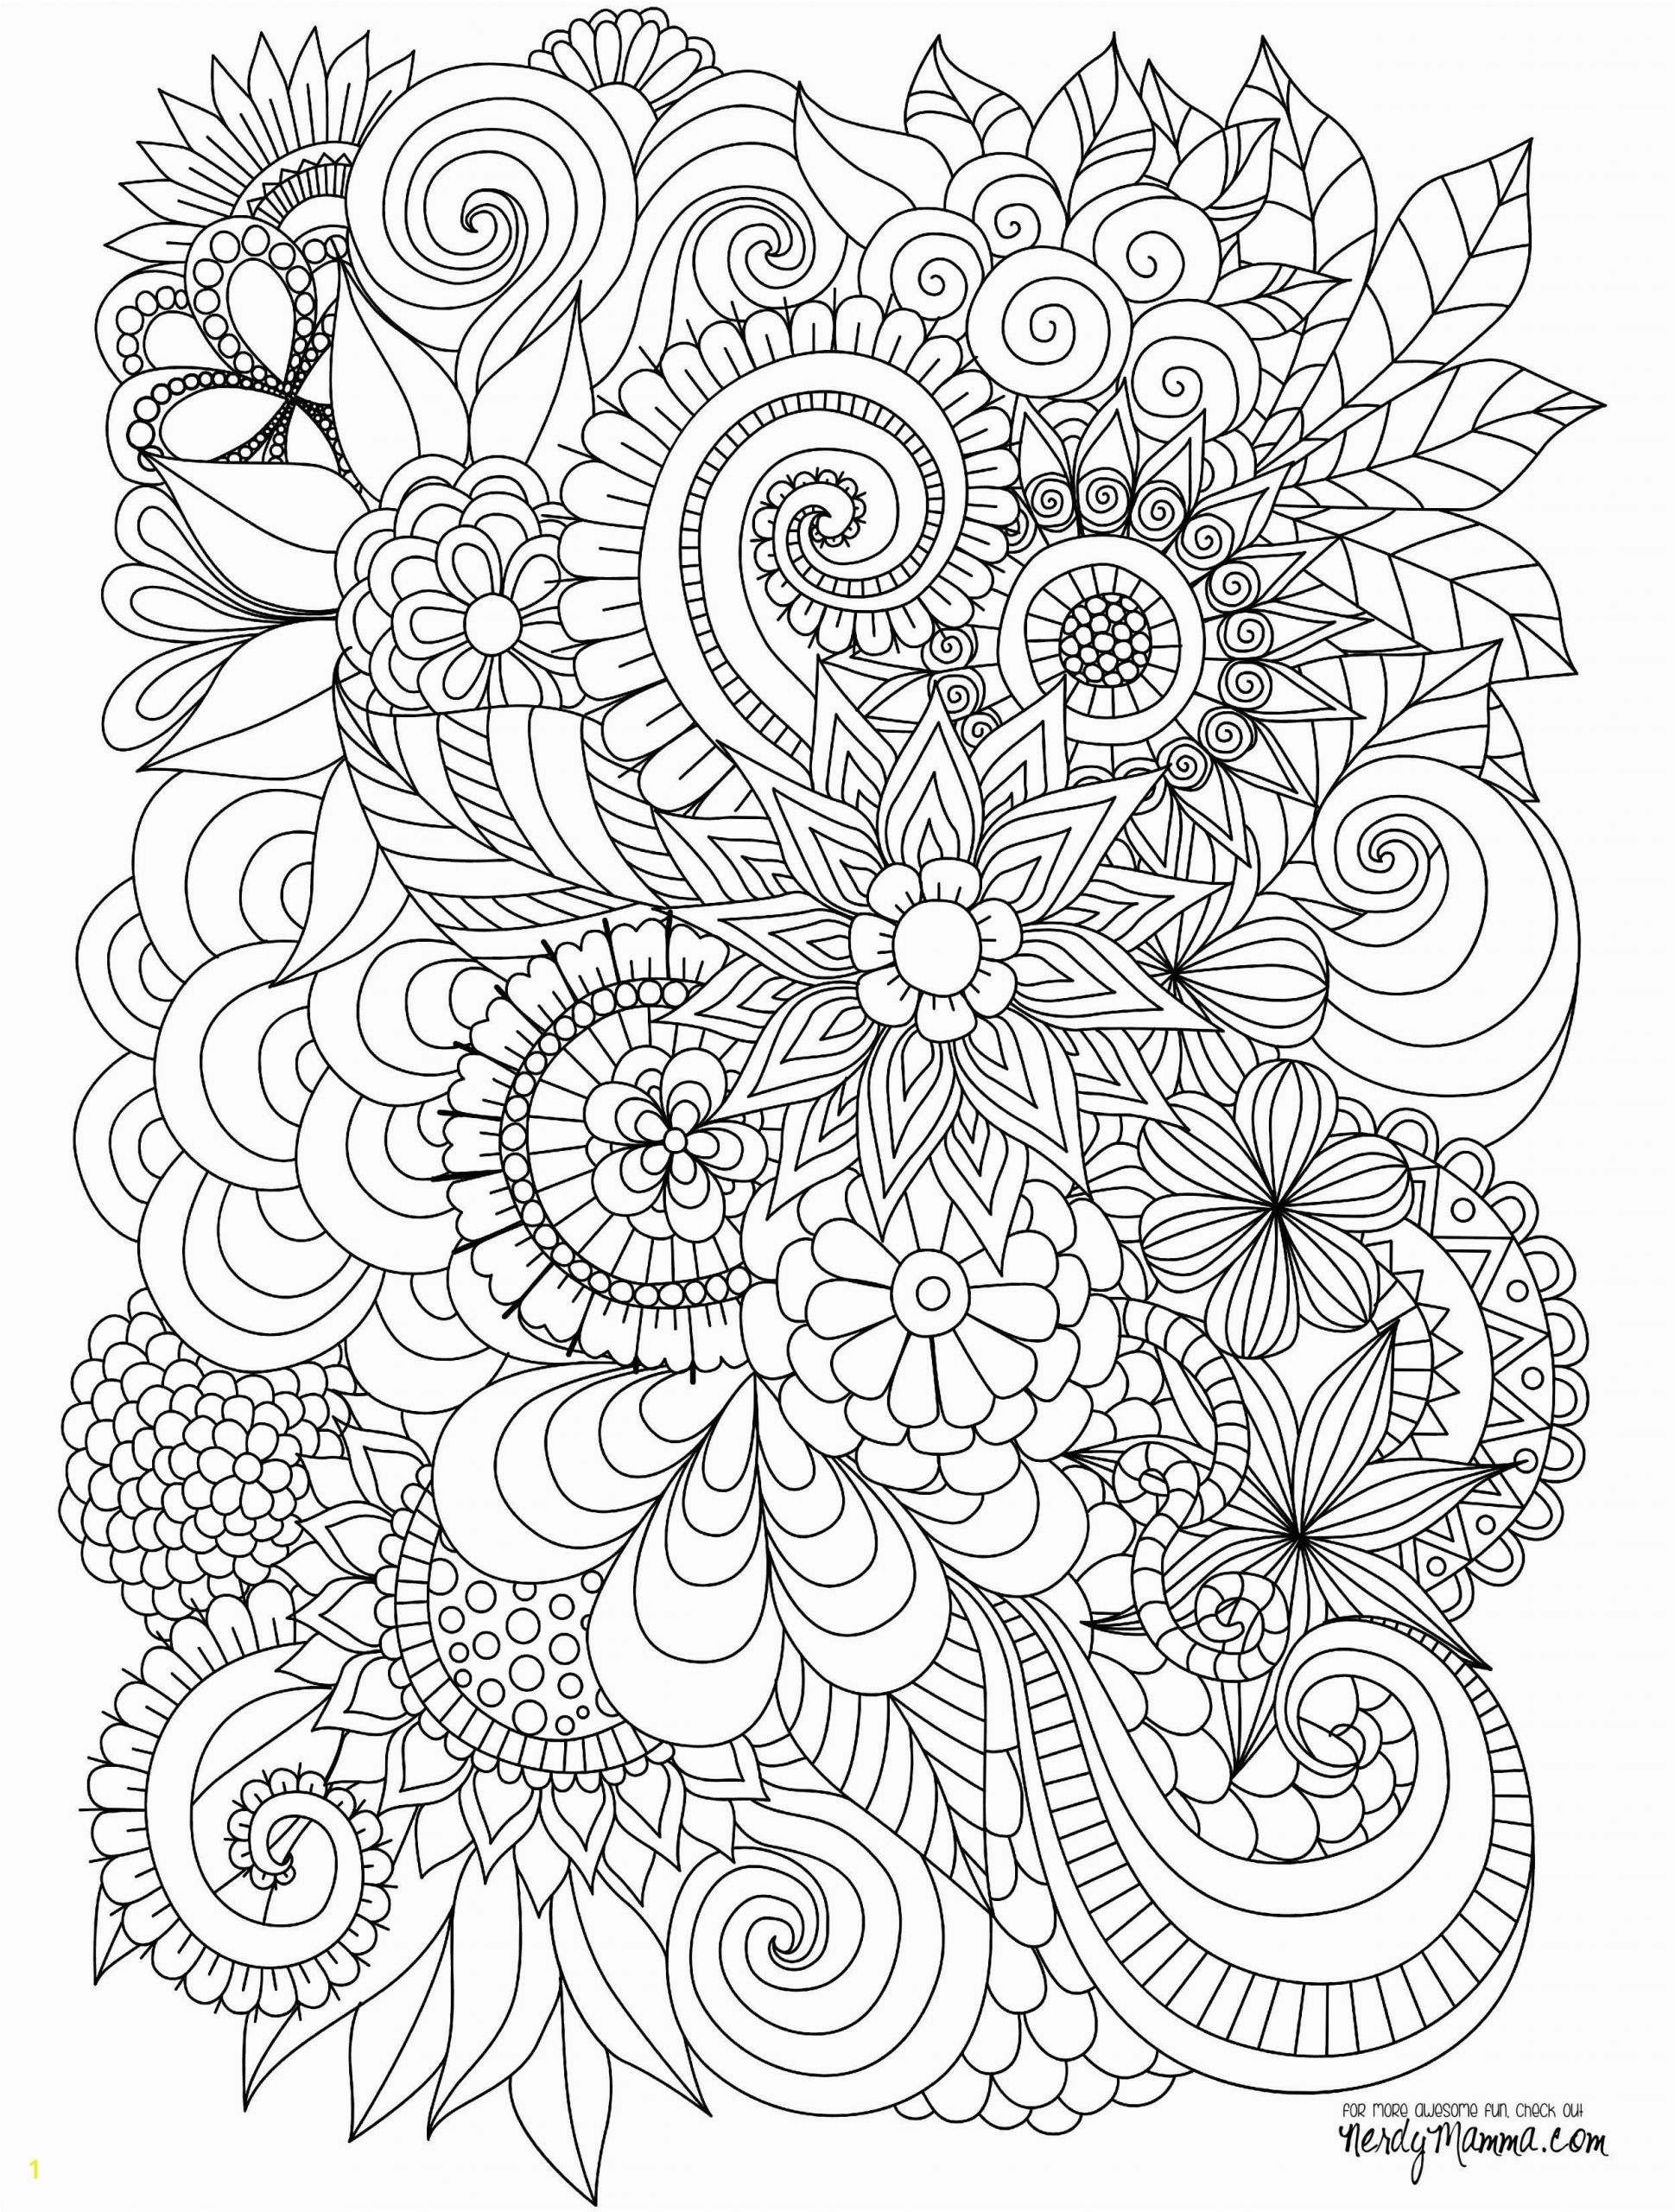 Abstract Flower Coloring Pages for Adults Flowers Abstract Coloring Pages Colouring Adult Detailed